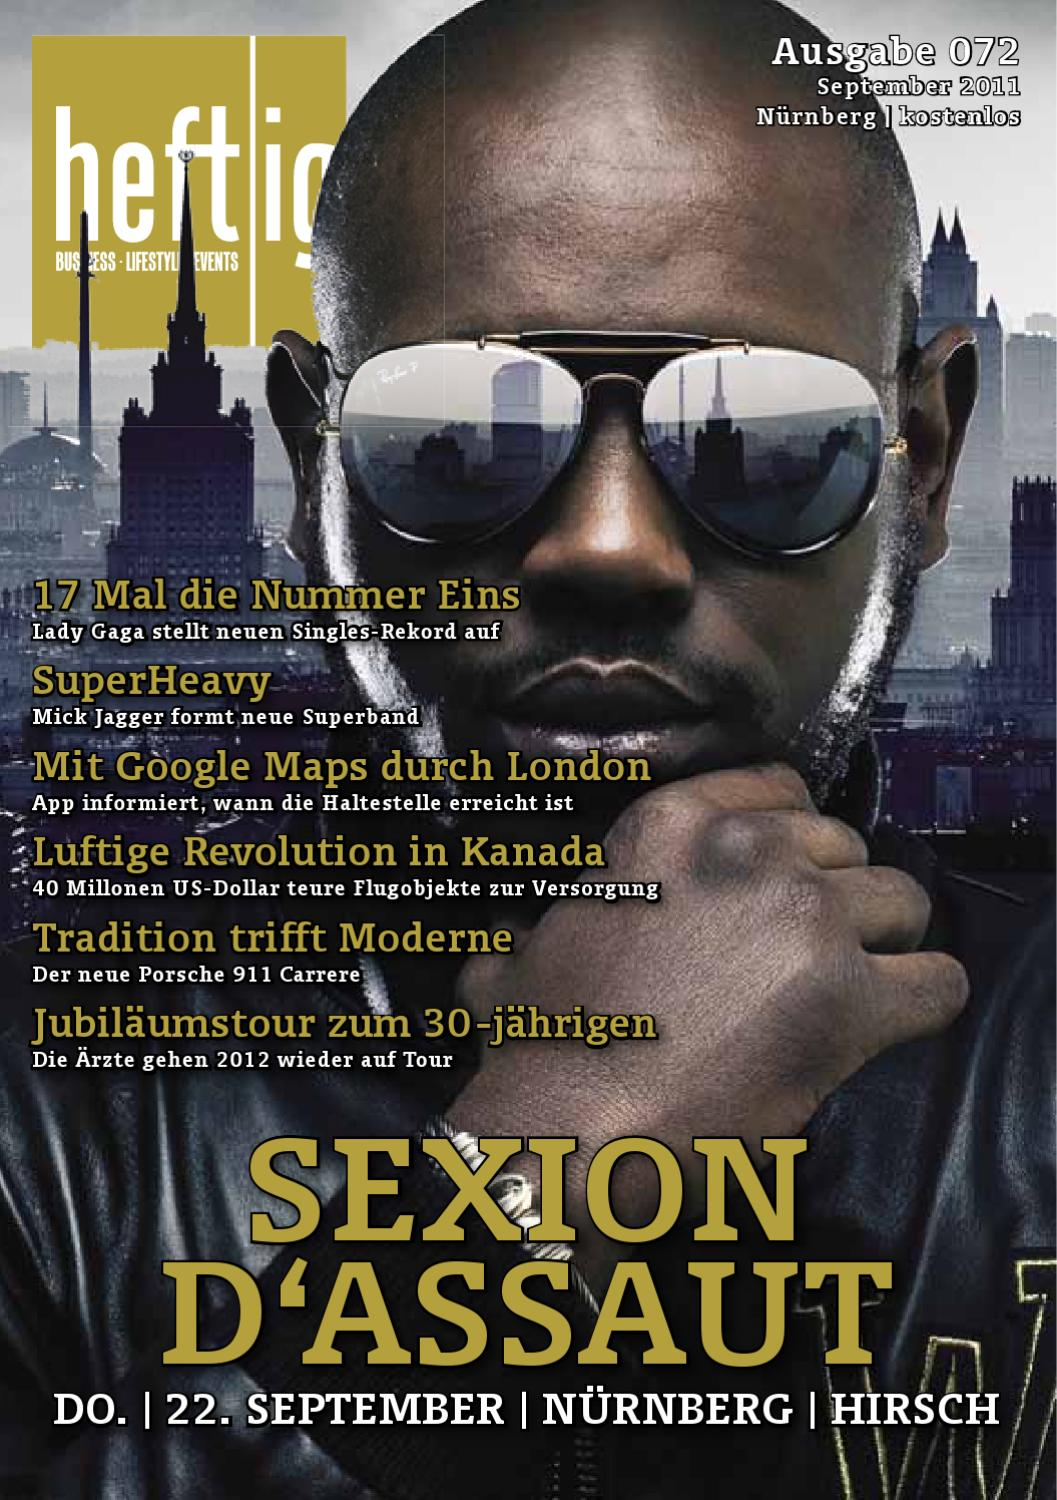 Ig Weisser Heft Ig Magazin September 2011 By Heftig Magazin Issuu